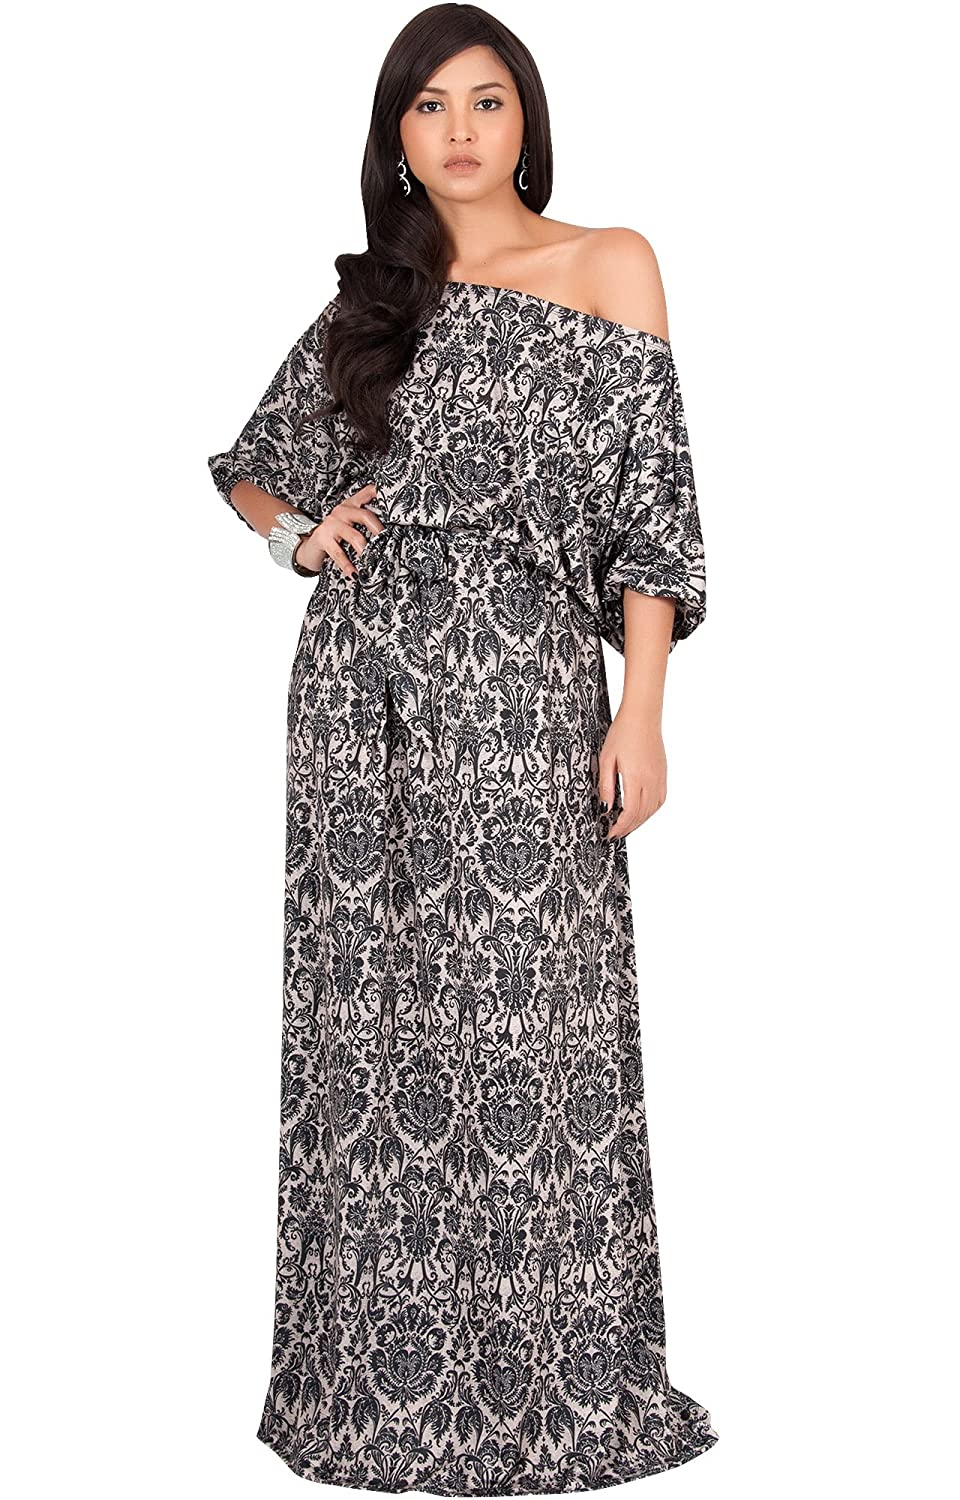 a3b813808020 KOH KOH Womens Long One Shoulder 3 4 Short Sleeve Sexy Summer Boho Maxi  Dress at Amazon Women s Clothing store